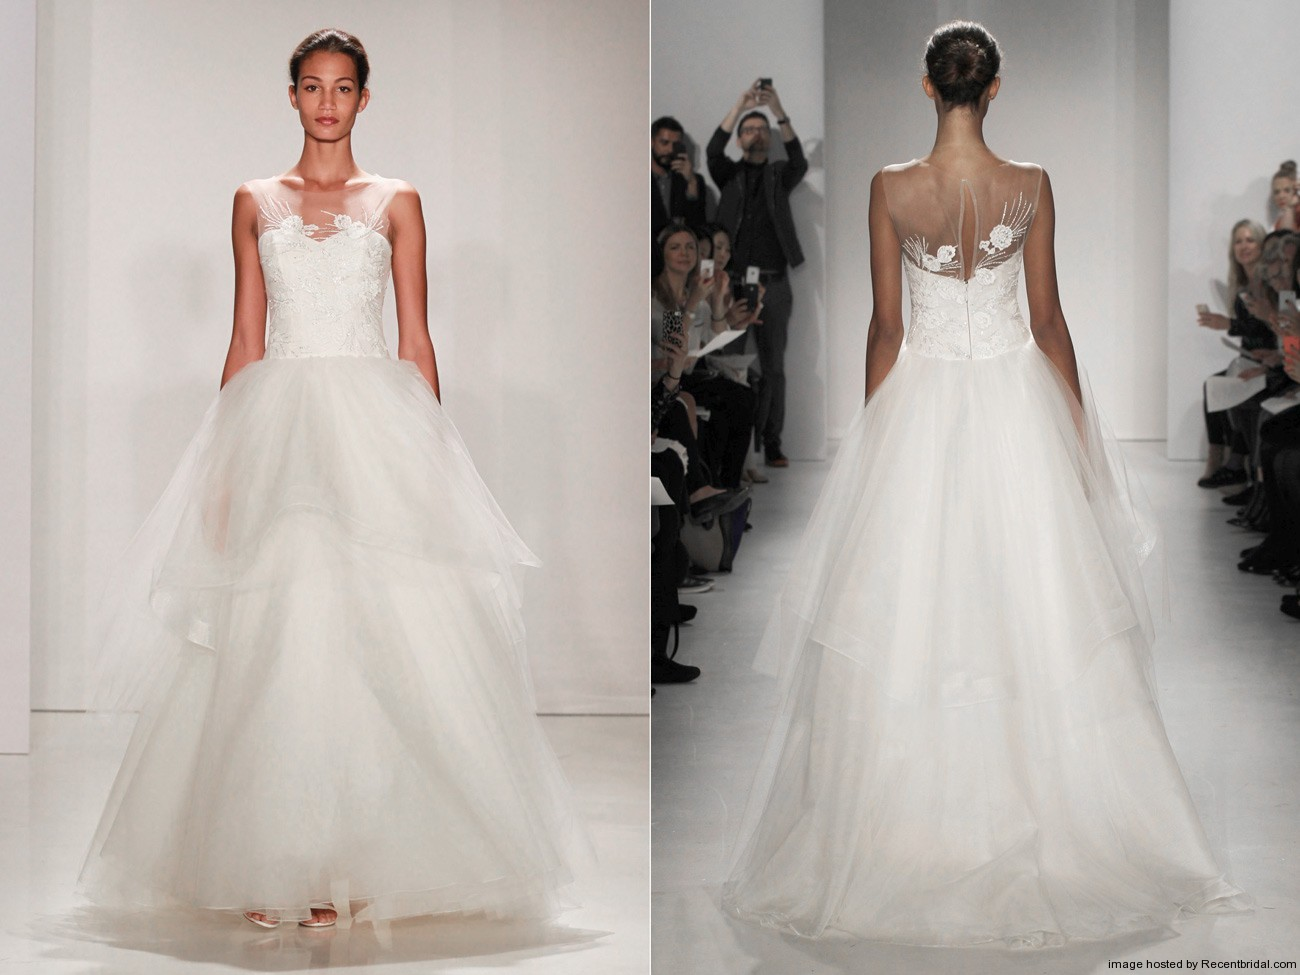 Amsale-Fall-2015-tiered-ball-gown-wedding-dress-with-a-sweetheart-neckline.jpg